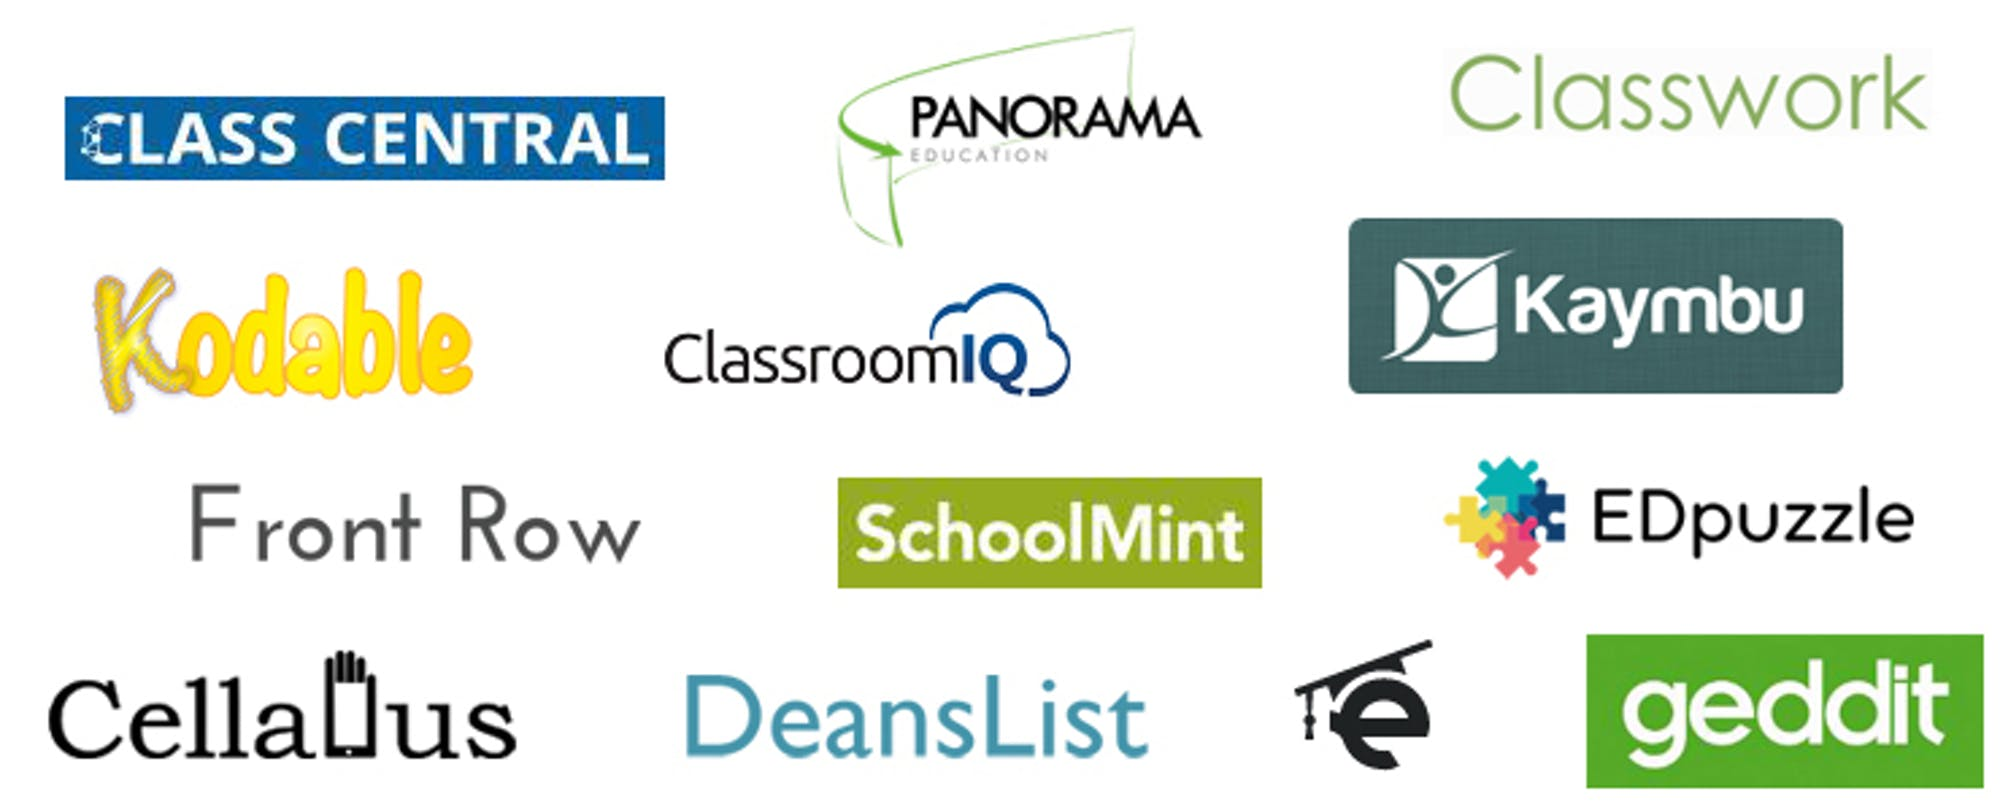 Imagine K12 Launches 13 Startups